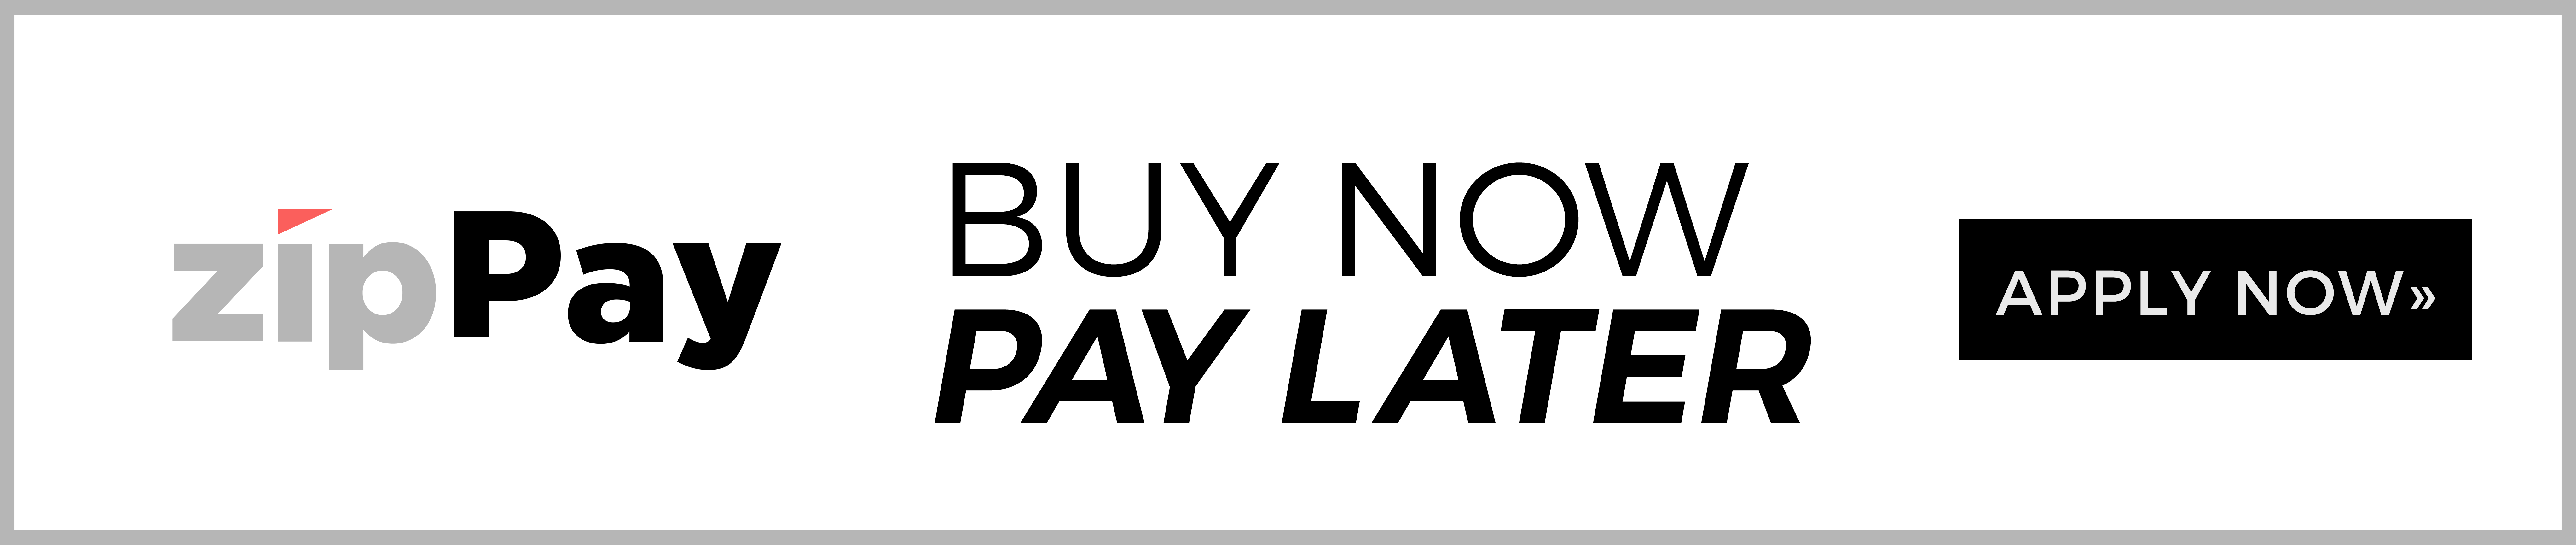 Zippay Now Available - Buy Now Pay Later